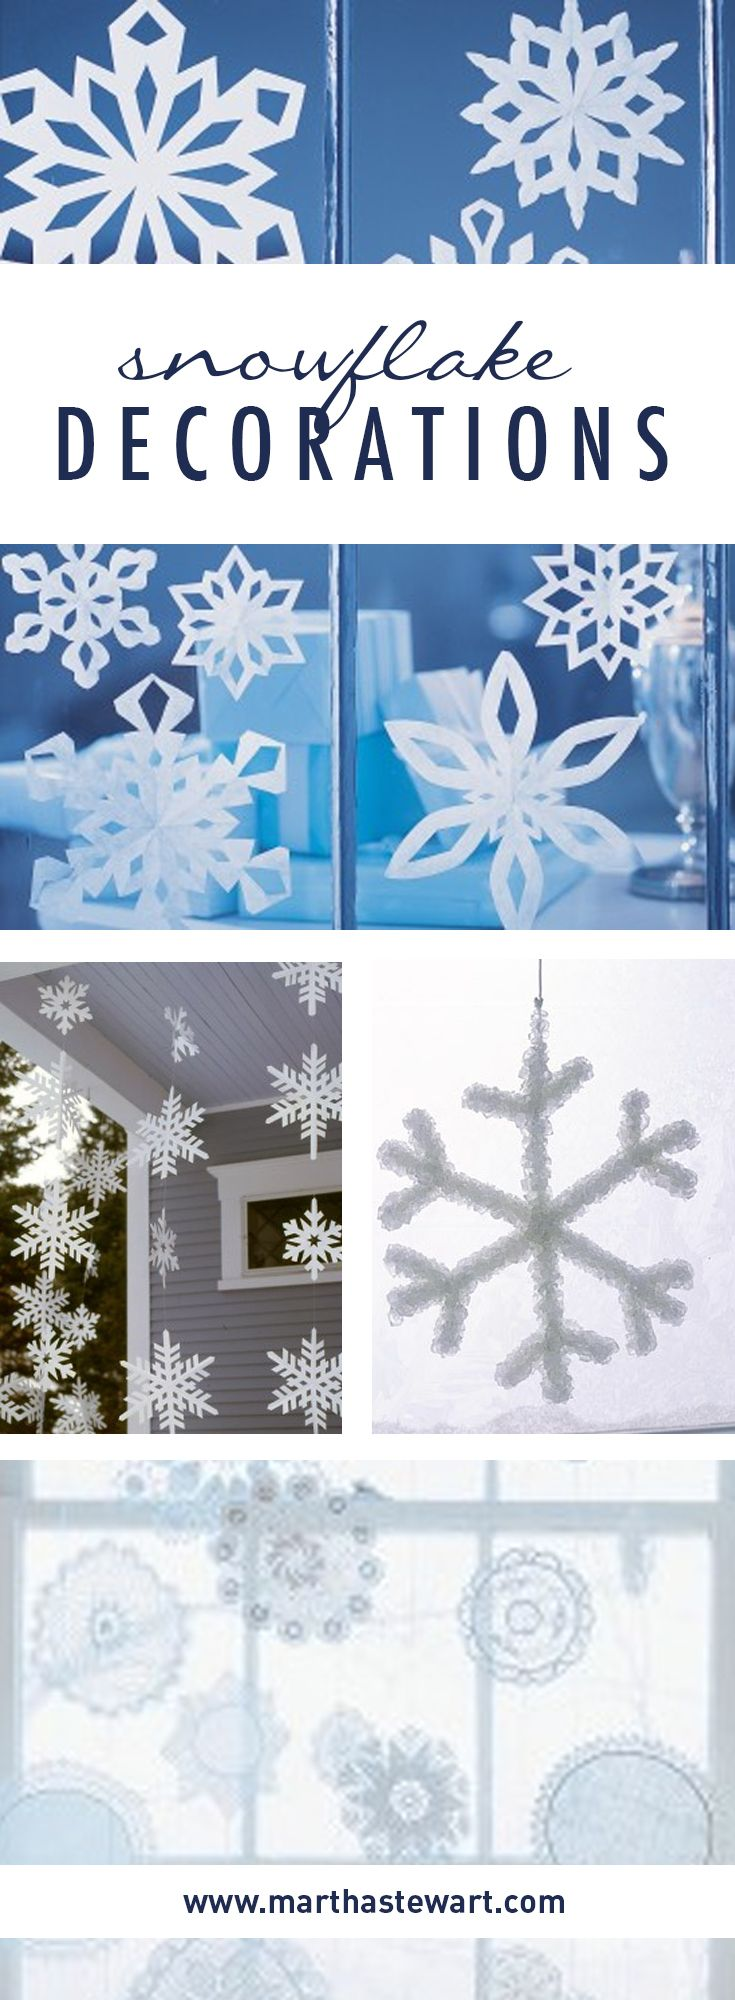 With their fanciful geometric designs, delicate snowflakes are the perfect inspiration for winter craft projects.